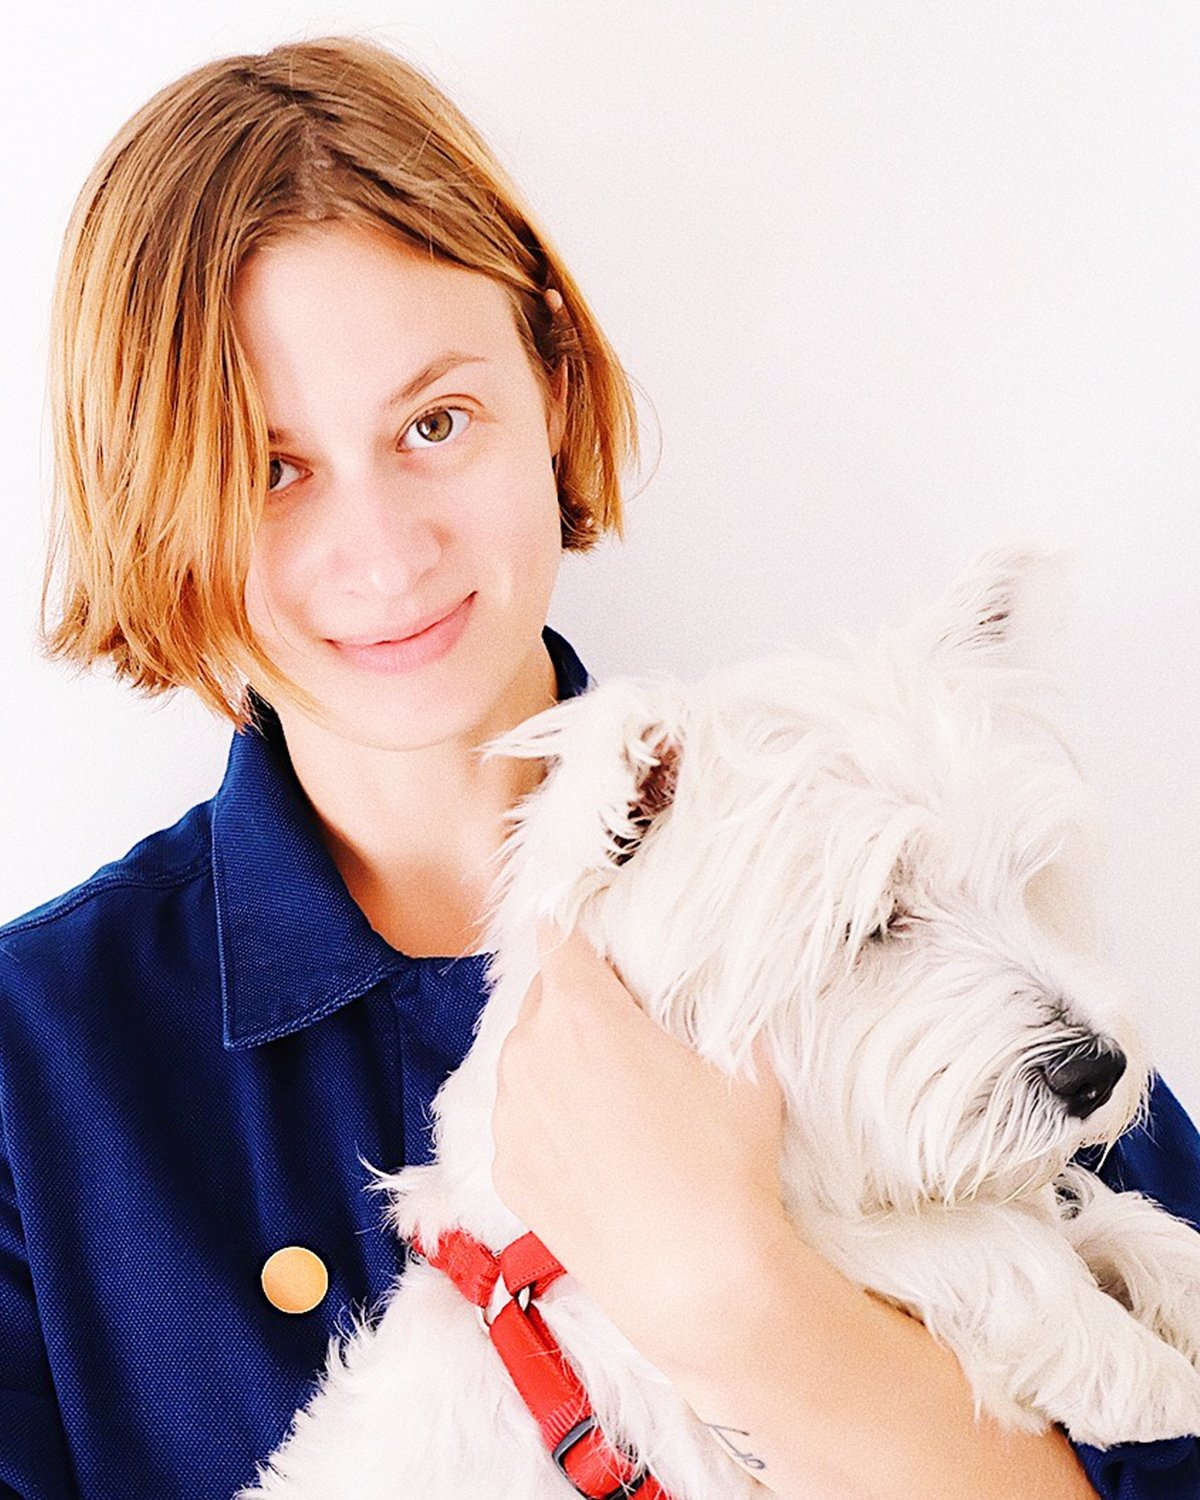 2019, Ekaterina and her dog.